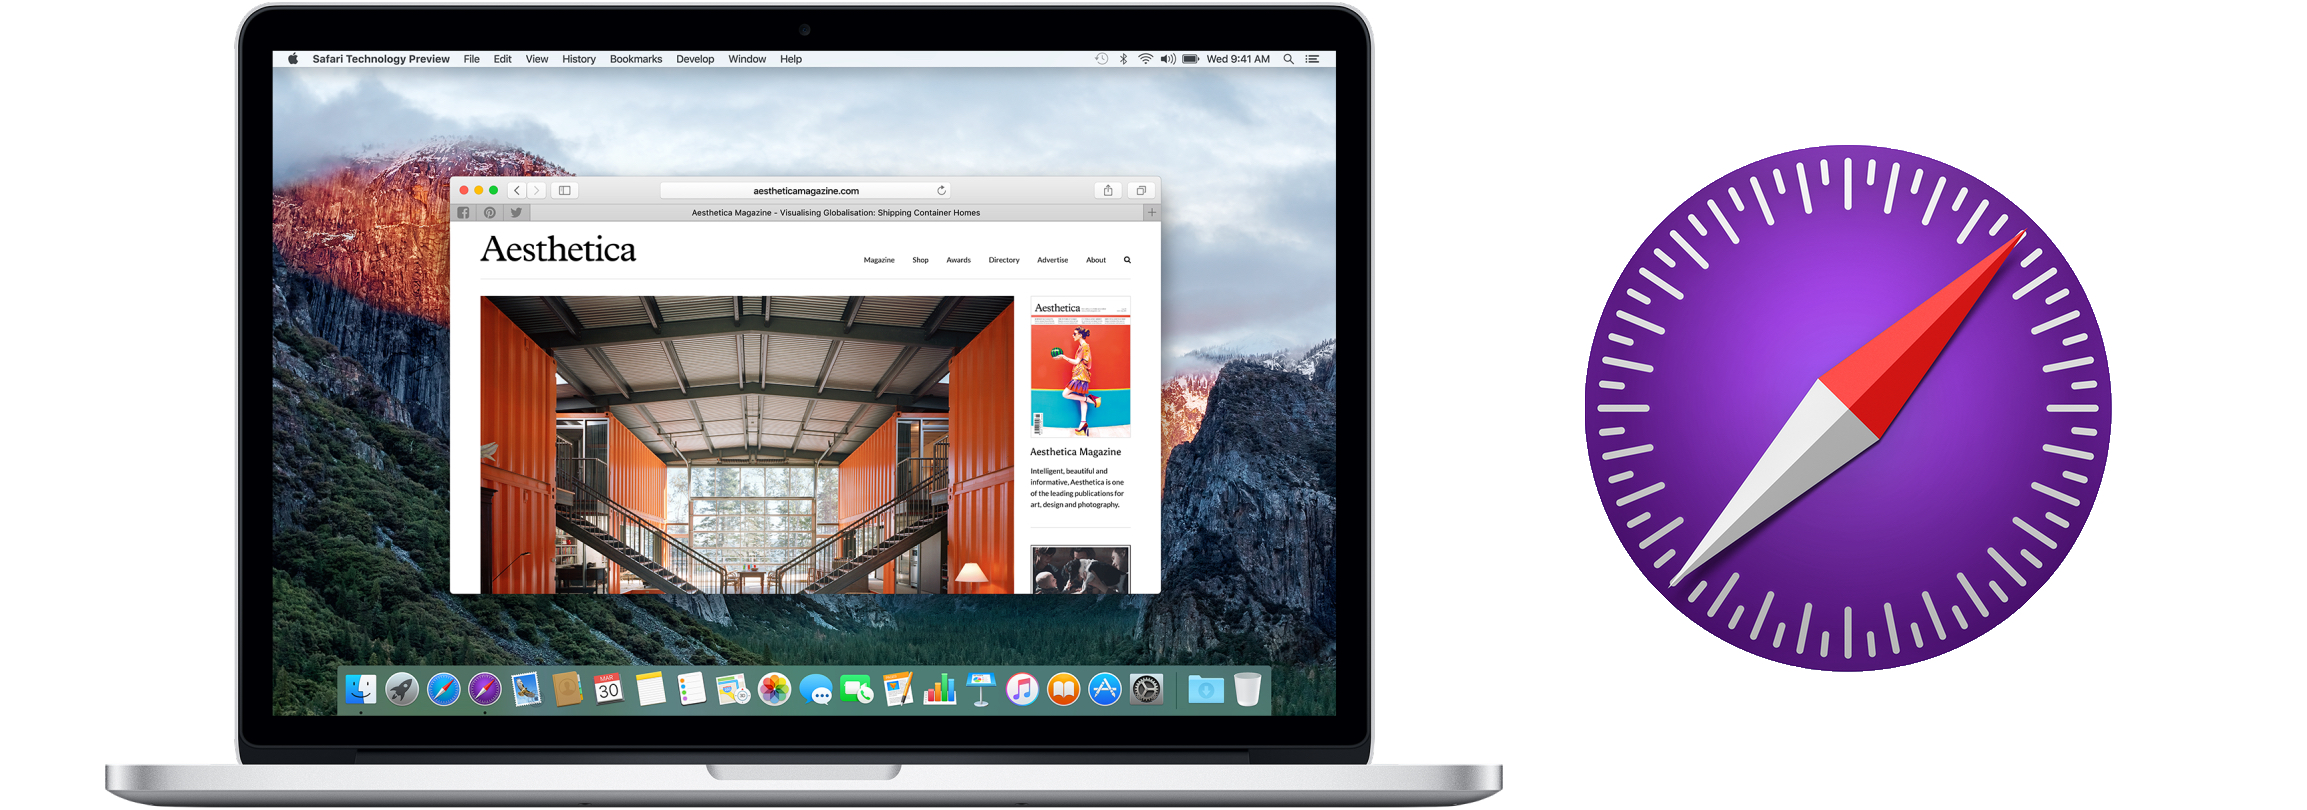 Apple launches Safari Technology Preview, a browser for